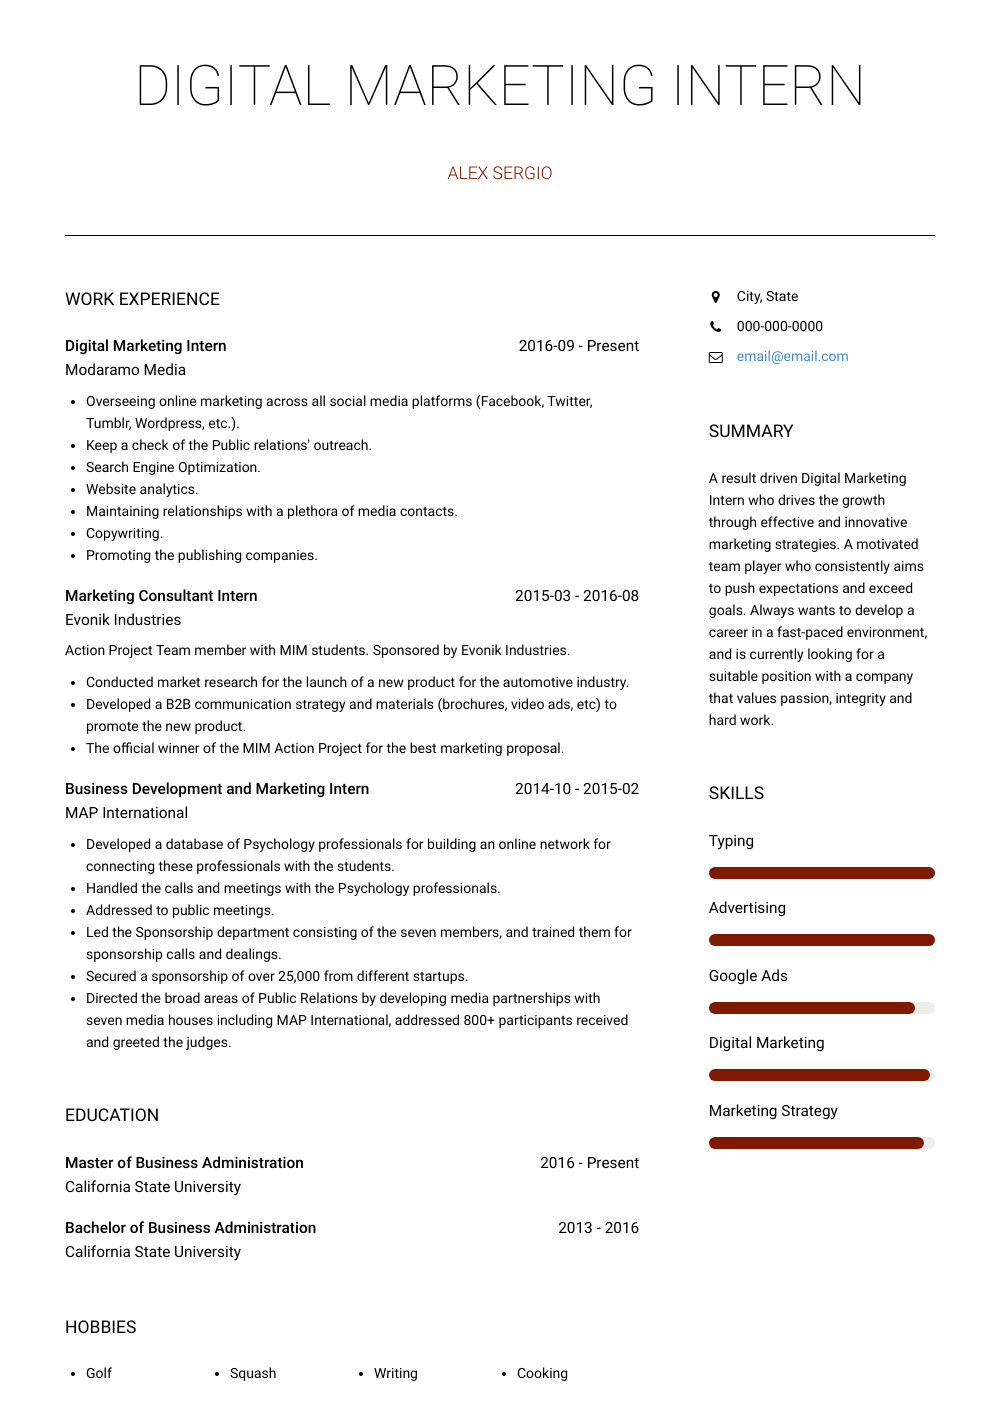 Digital Marketing Intern Resume Sample and Template